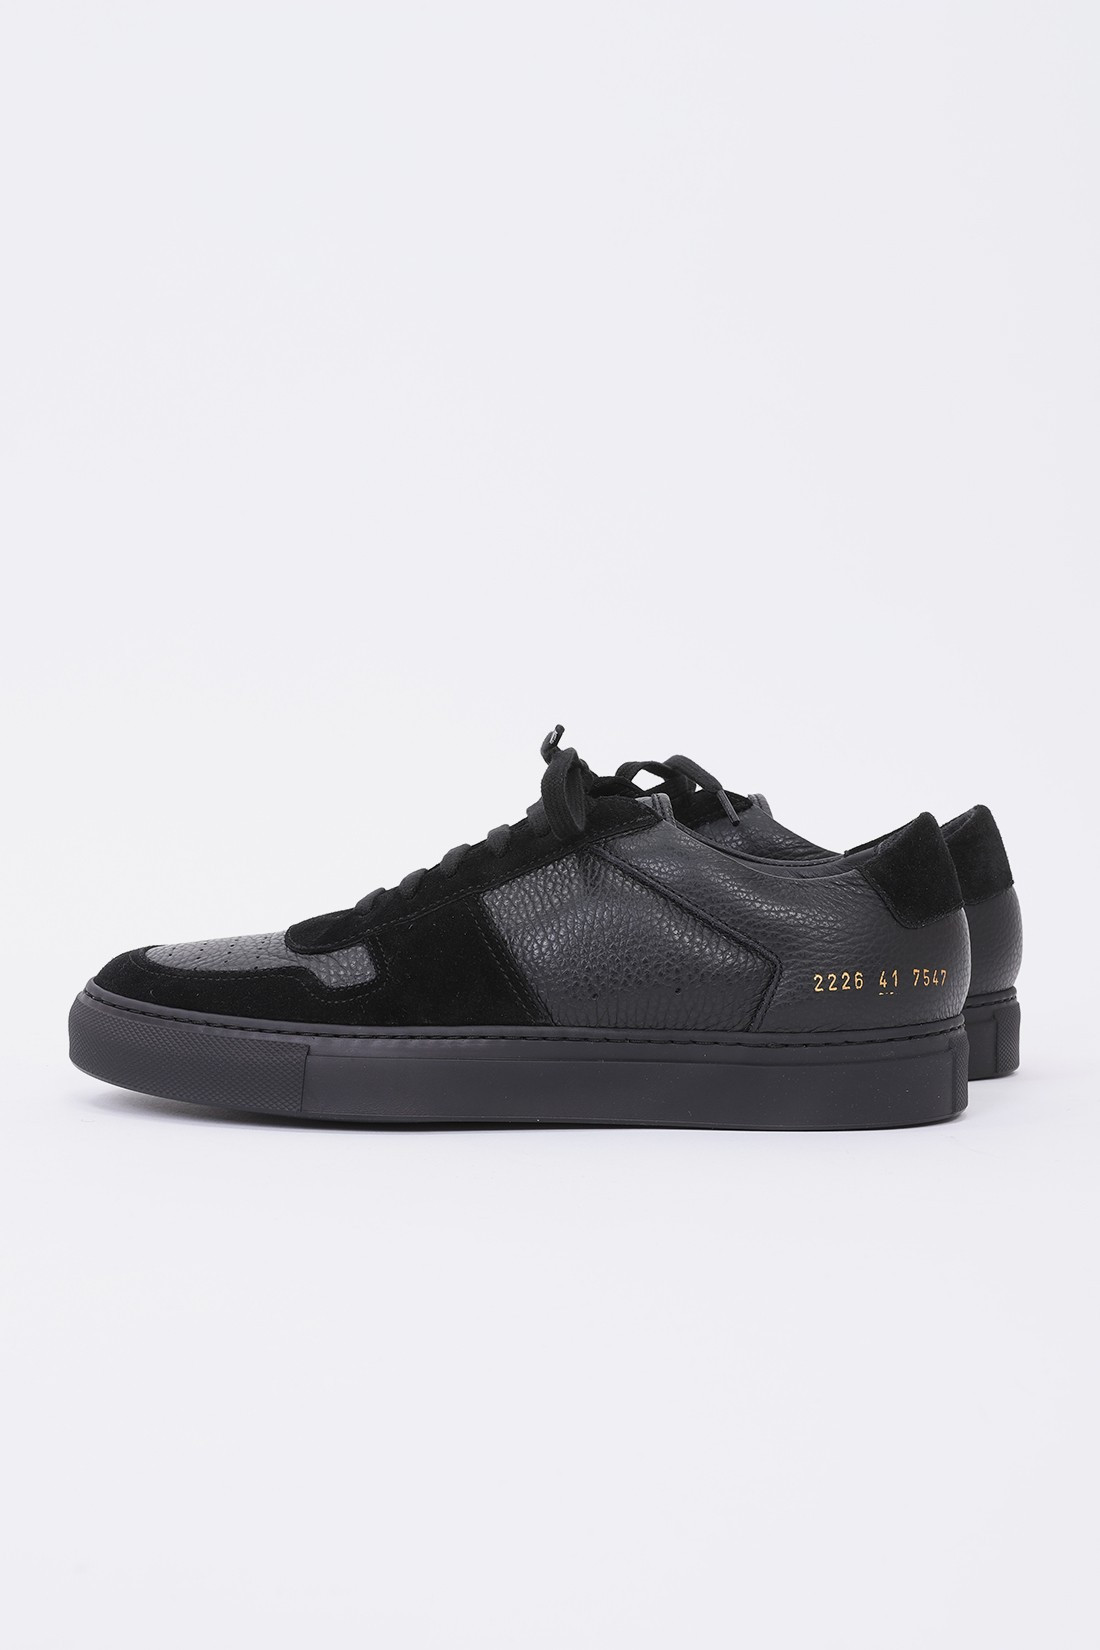 COMMON PROJECTS / Bball low premium 2226 Black 7547